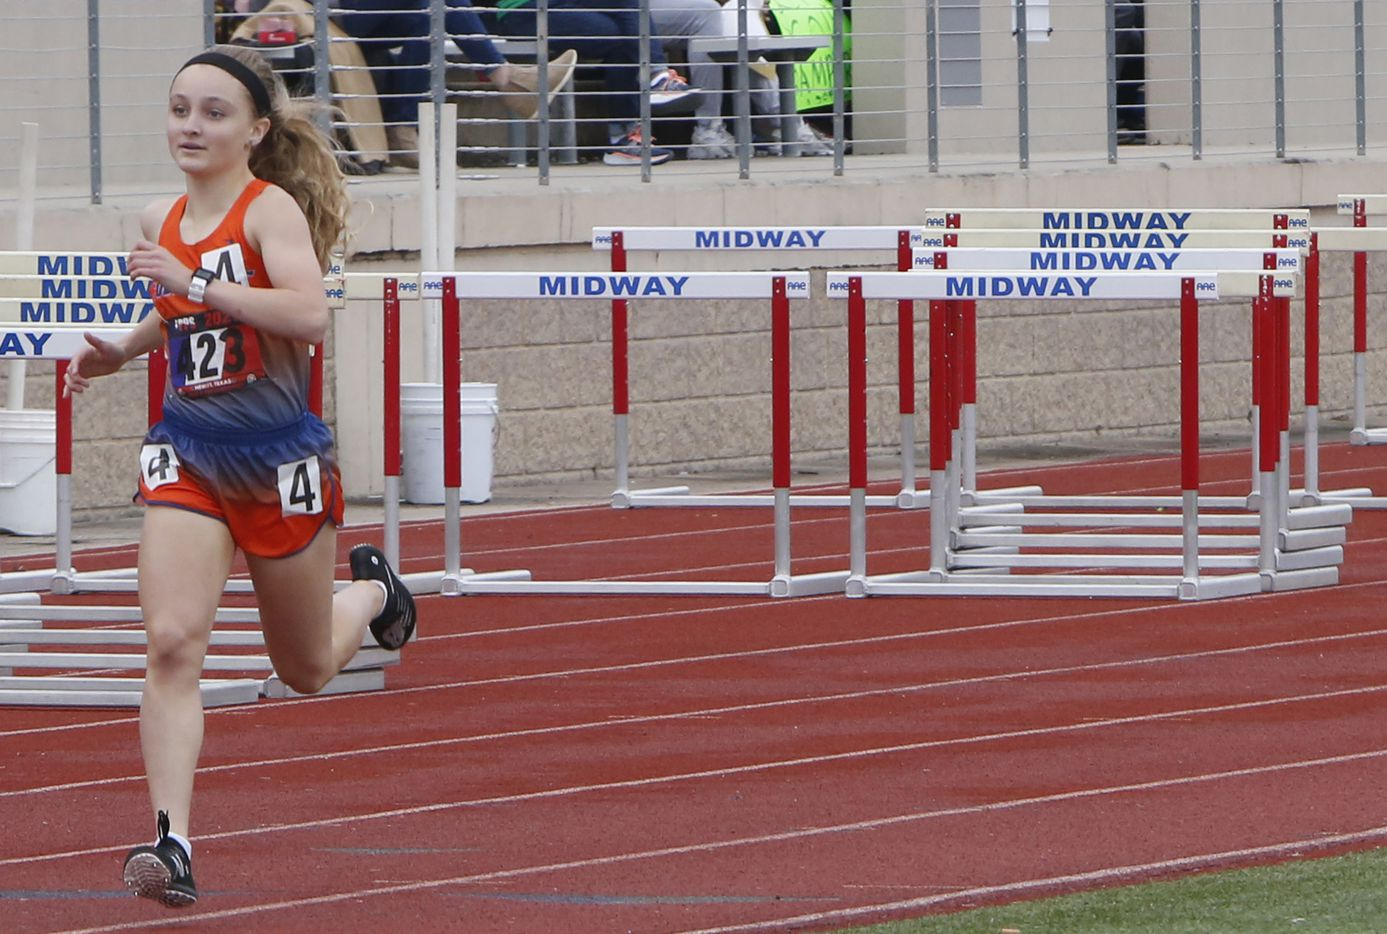 Colleyville Covenant's Emily Smith finishes first with plenty of elbow room to win the Class 4A Women 800 Meter Run event with a time of 2:20.50. The running finals from the TAPPS state track meet were held at Waco Midway's Panther Stadium in Hewitt on May 1, 2021. (Steve Hamm/ Special Contributor)